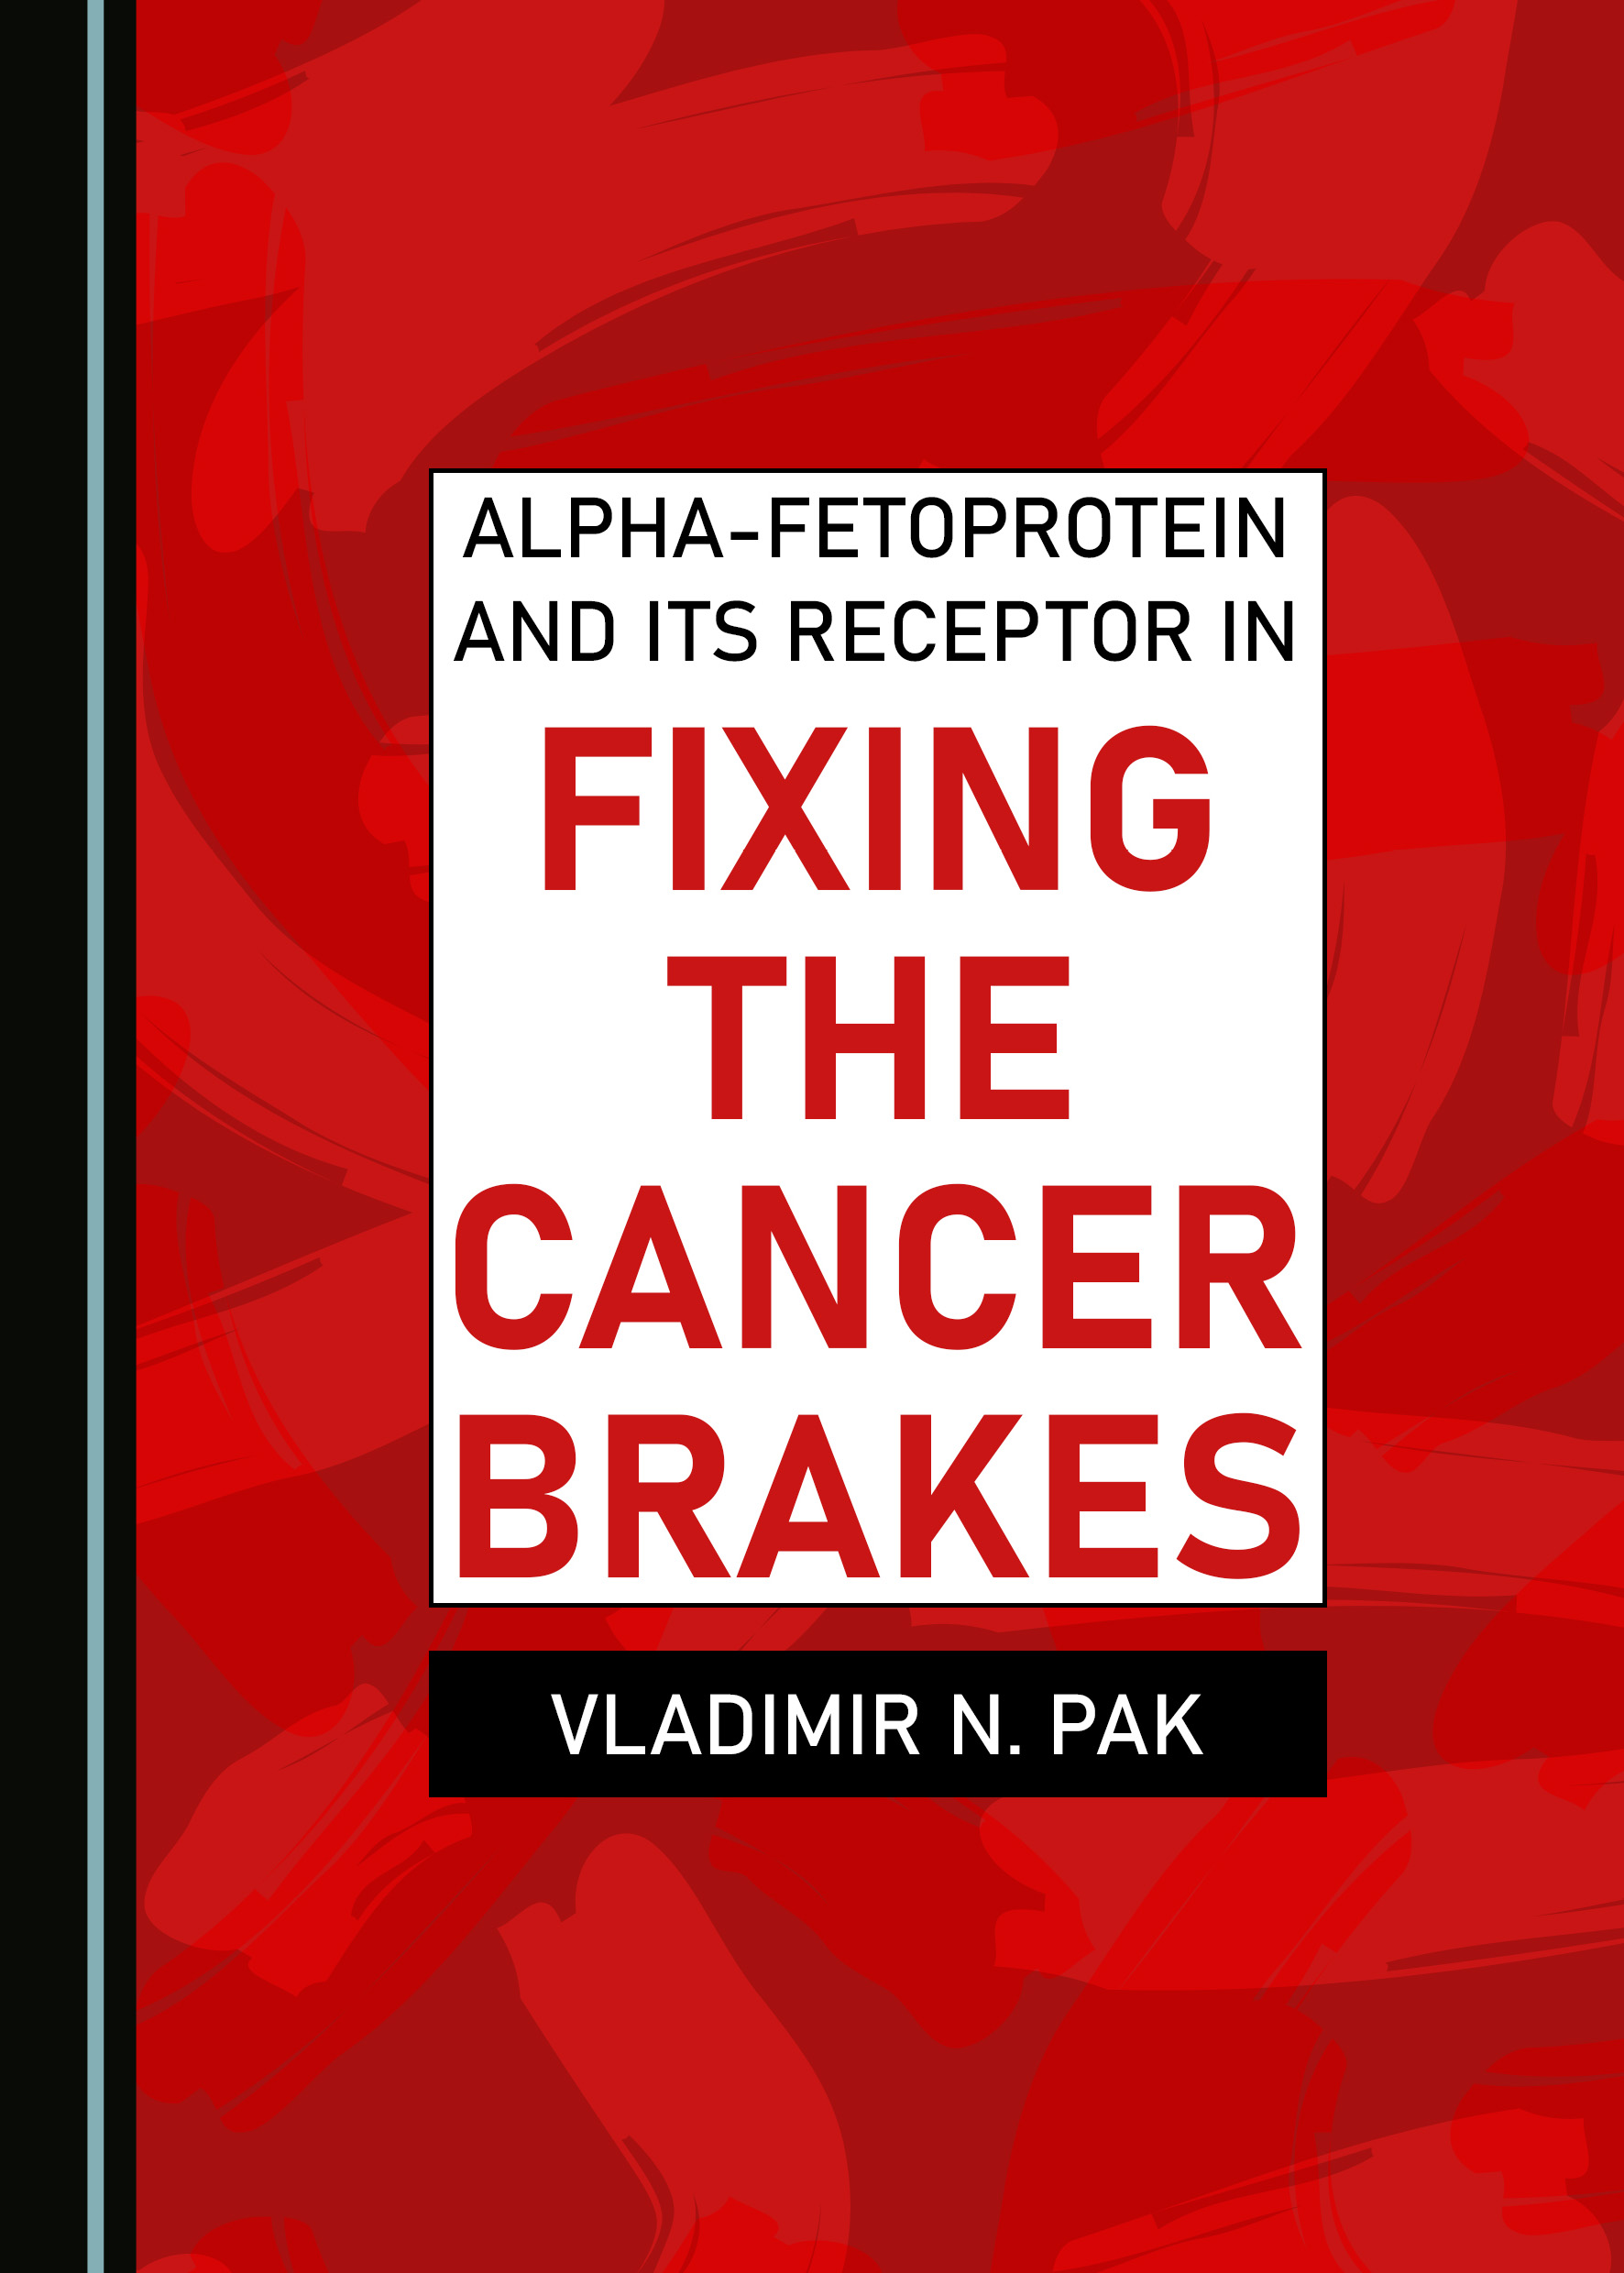 Alpha-fetoprotein and Its Receptor in Fixing the Cancer Brakes